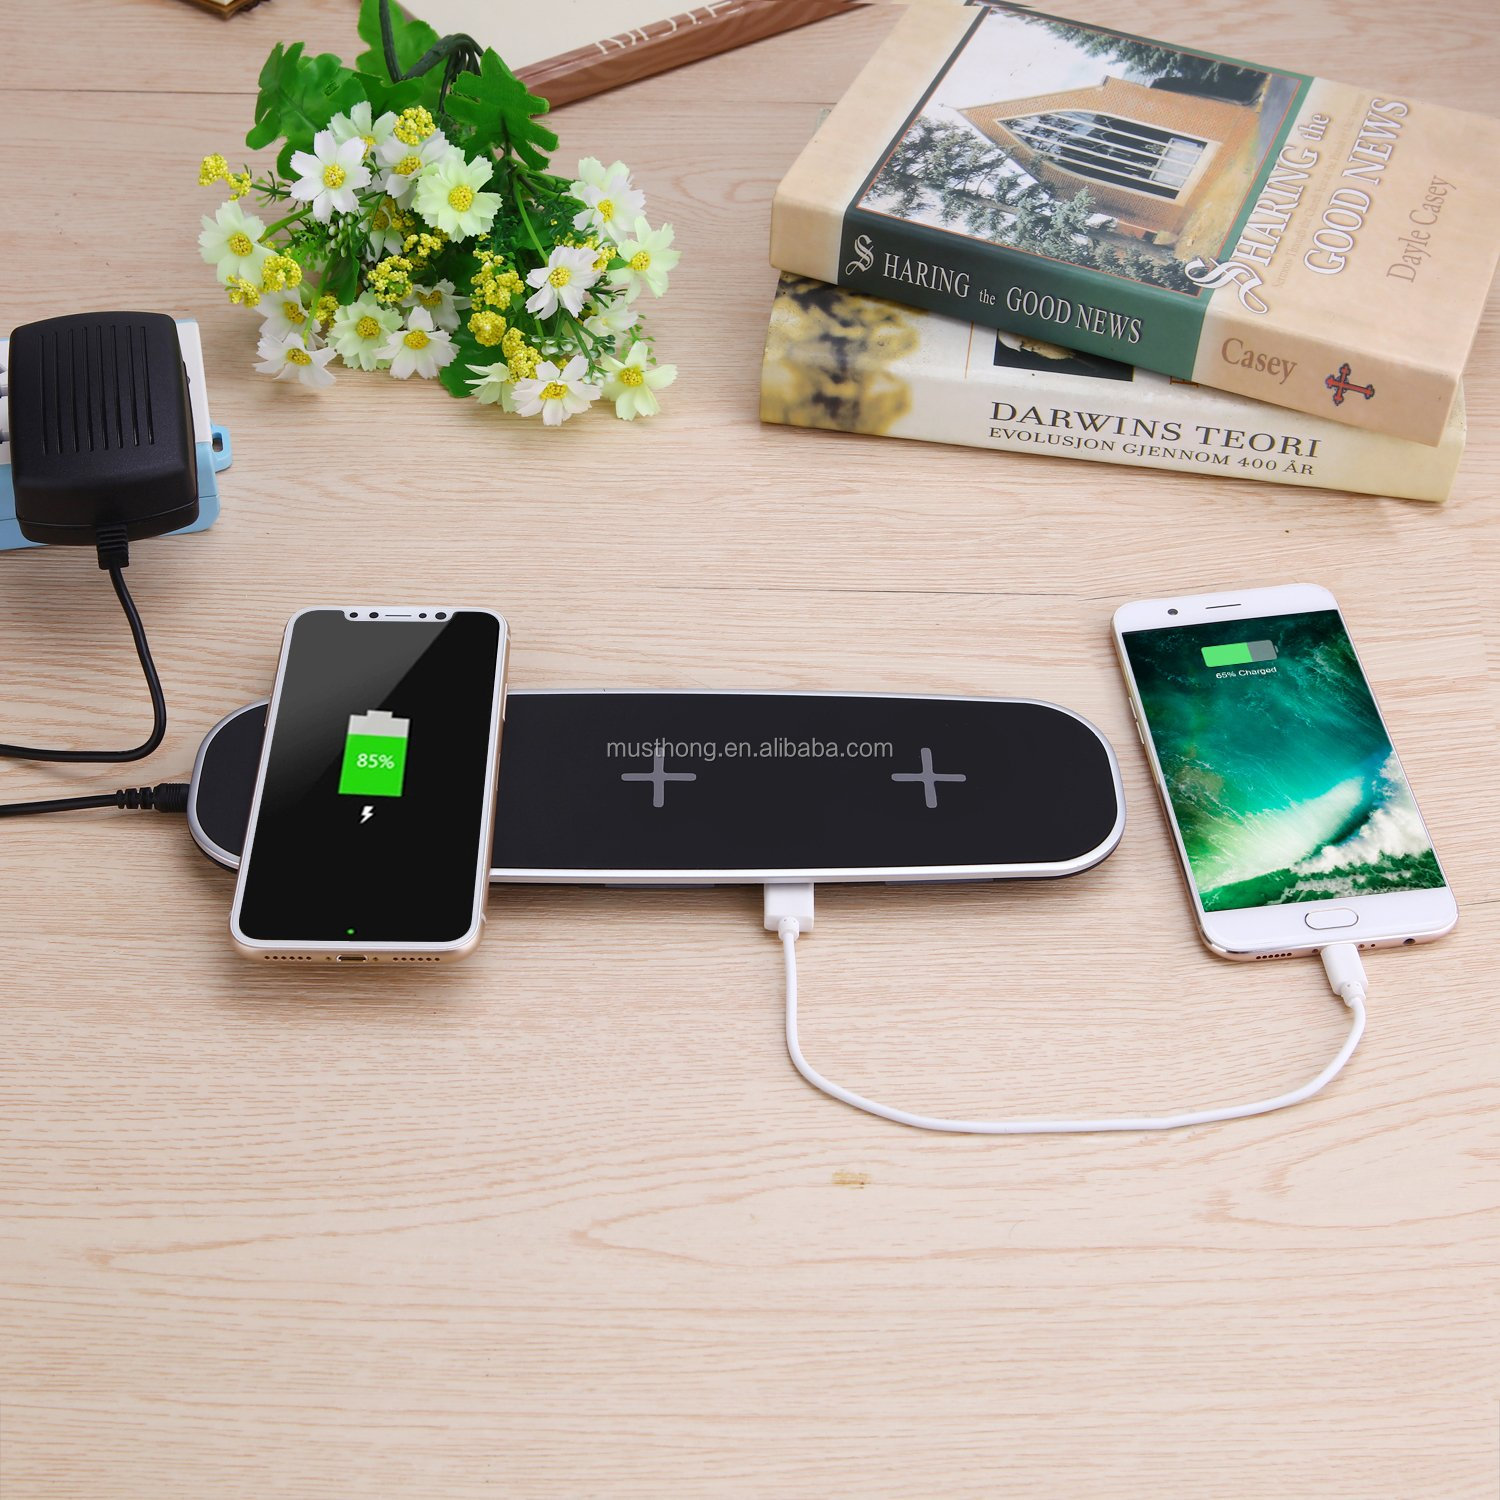 Triple Fast Wireless Charging Pad for iPhone X and Other Qi-enabled Device with 2 USB Port to Charge Five Devices Simultaneously